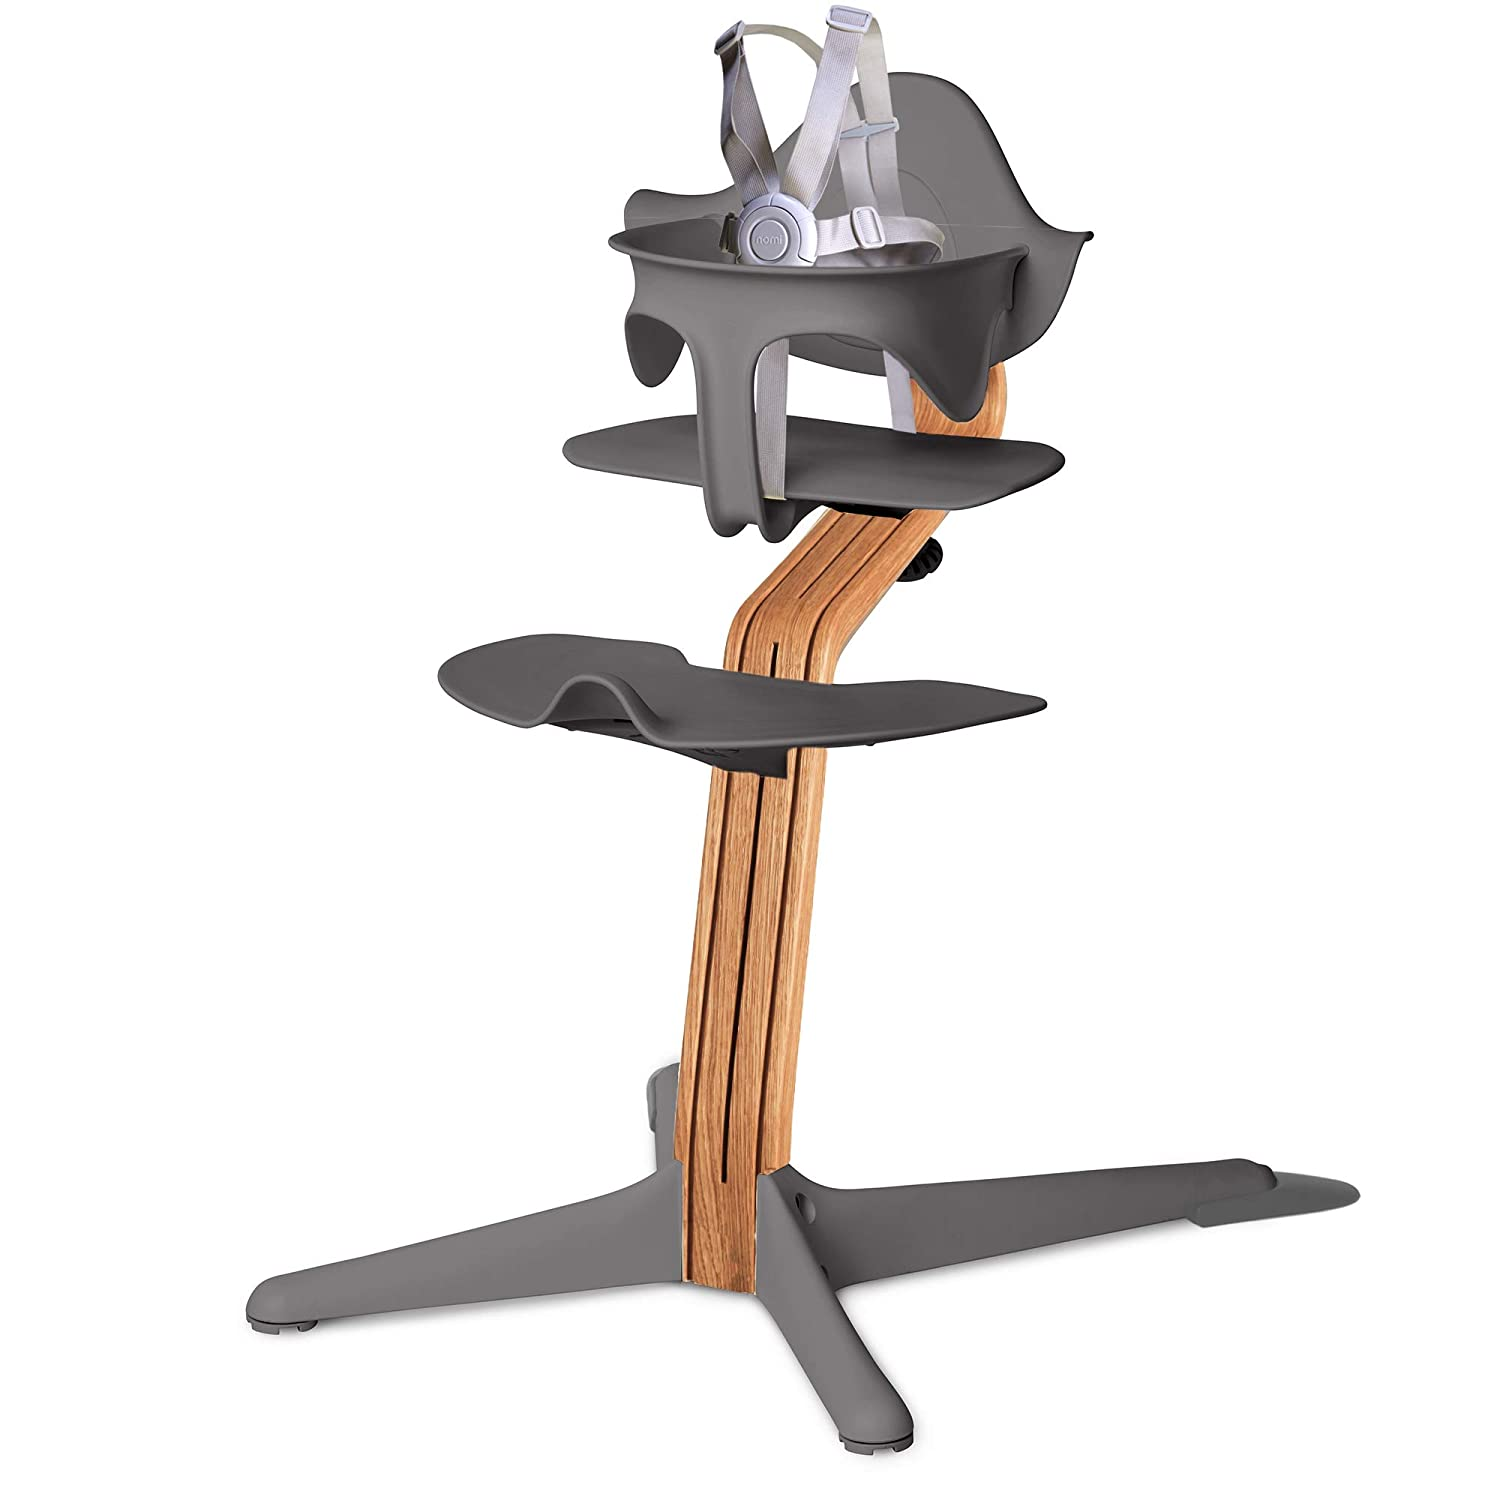 Amazon.com : Nomi High Chair, Gray – Premium Natural Oak Wood, Modern Scandinavian Design with a Strong Wooden Stem, Baby through Teenager and Beyond with Seamless Adjustability, Award Winning Highchair : Baby